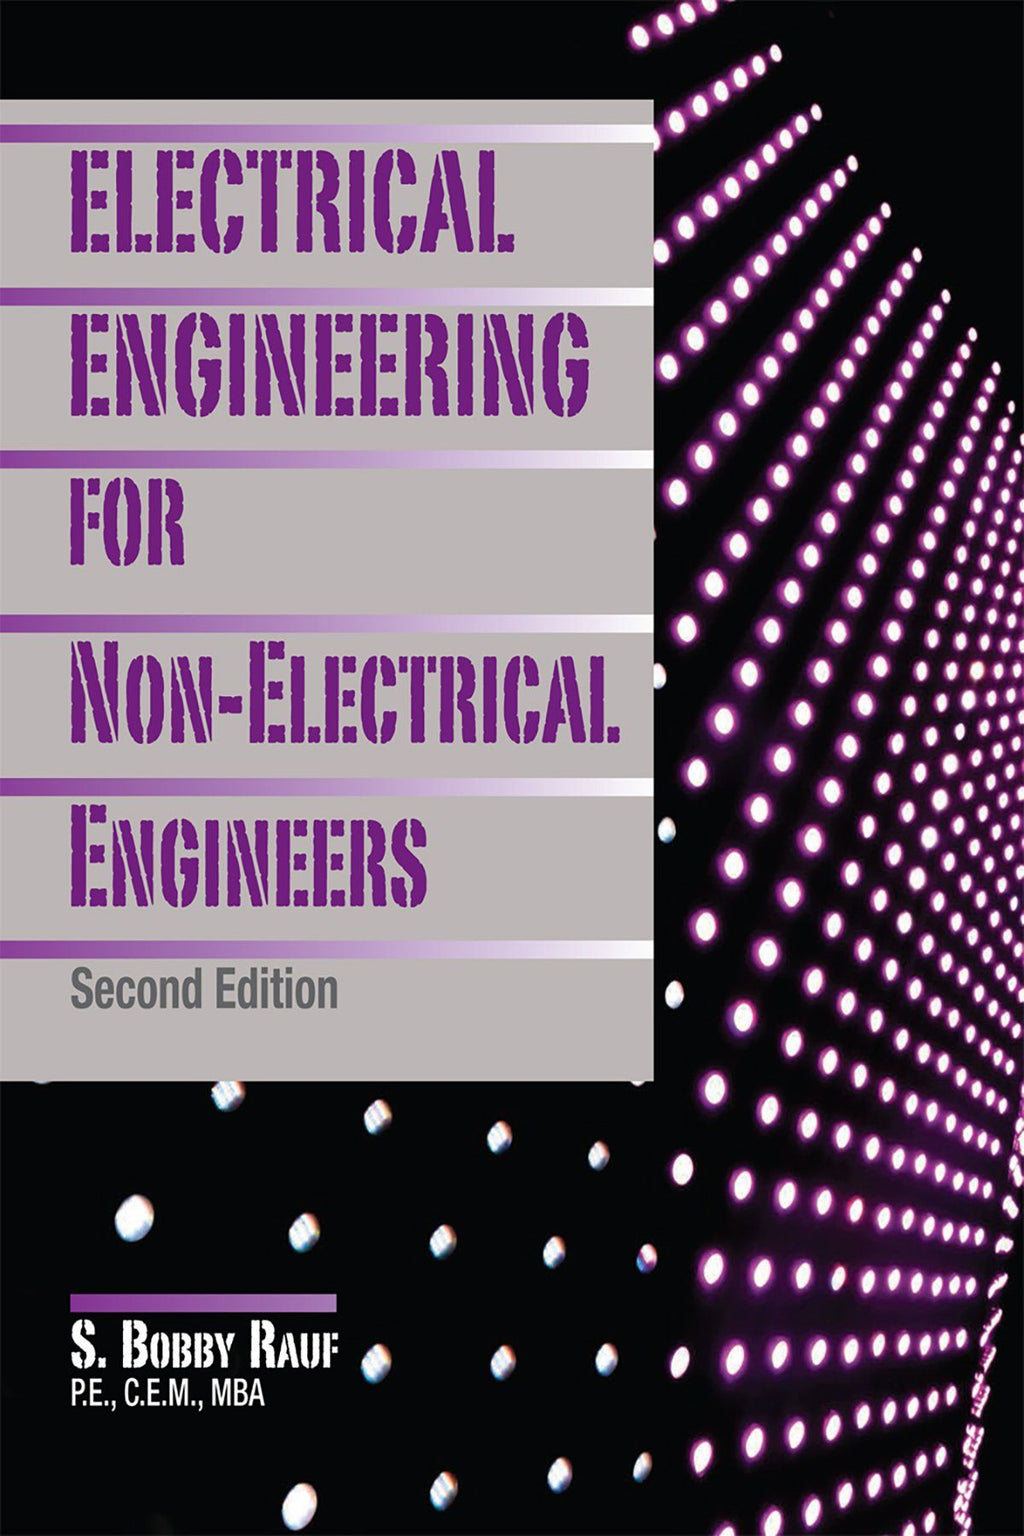 Electrical Engineering For Non-Electrical Engineers, 2nd Edition - AEE Programs